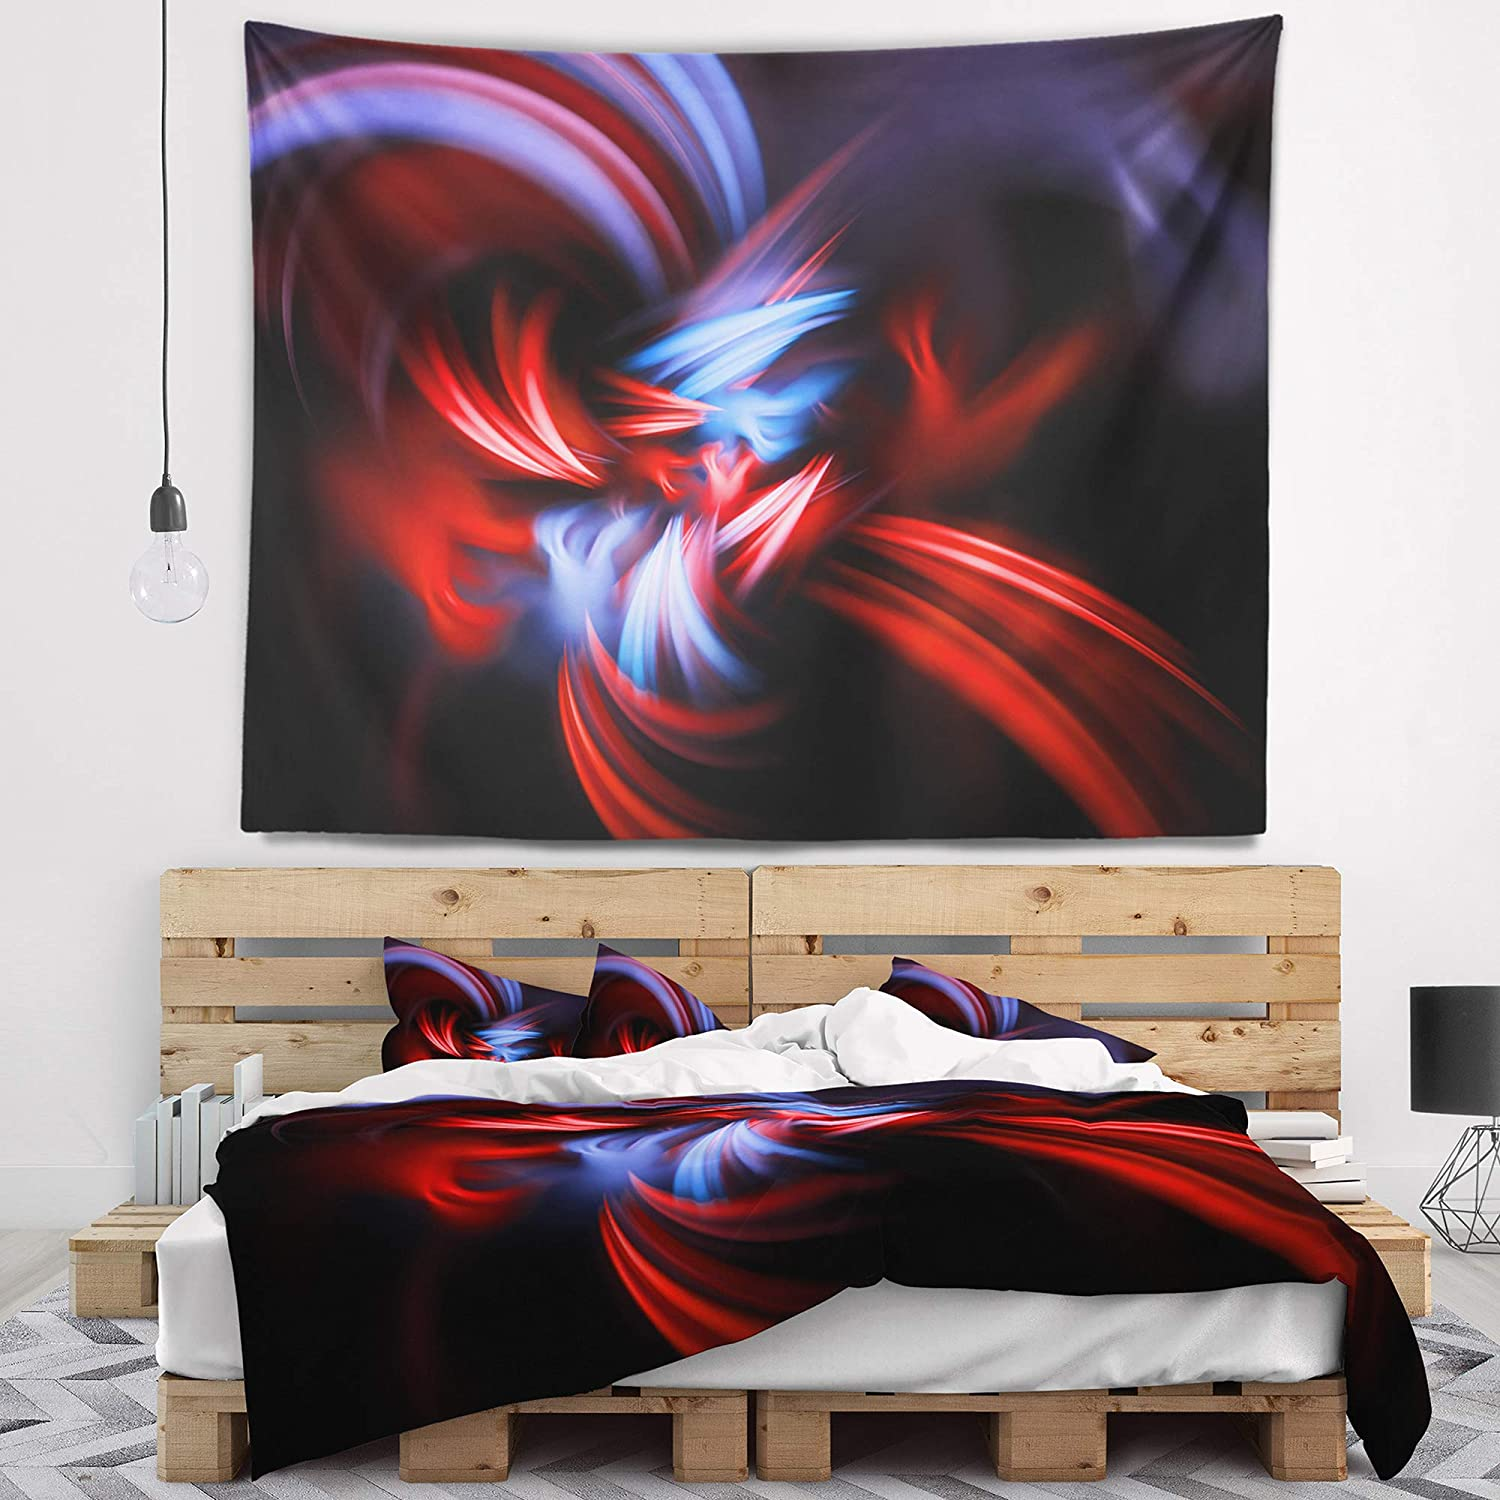 x 68 in Designart TAP9322-80-68  Fractal Red Connected Stripes Contemporary Blanket D/écor Art for Home and Office Wall Tapestry x Large in 80 in